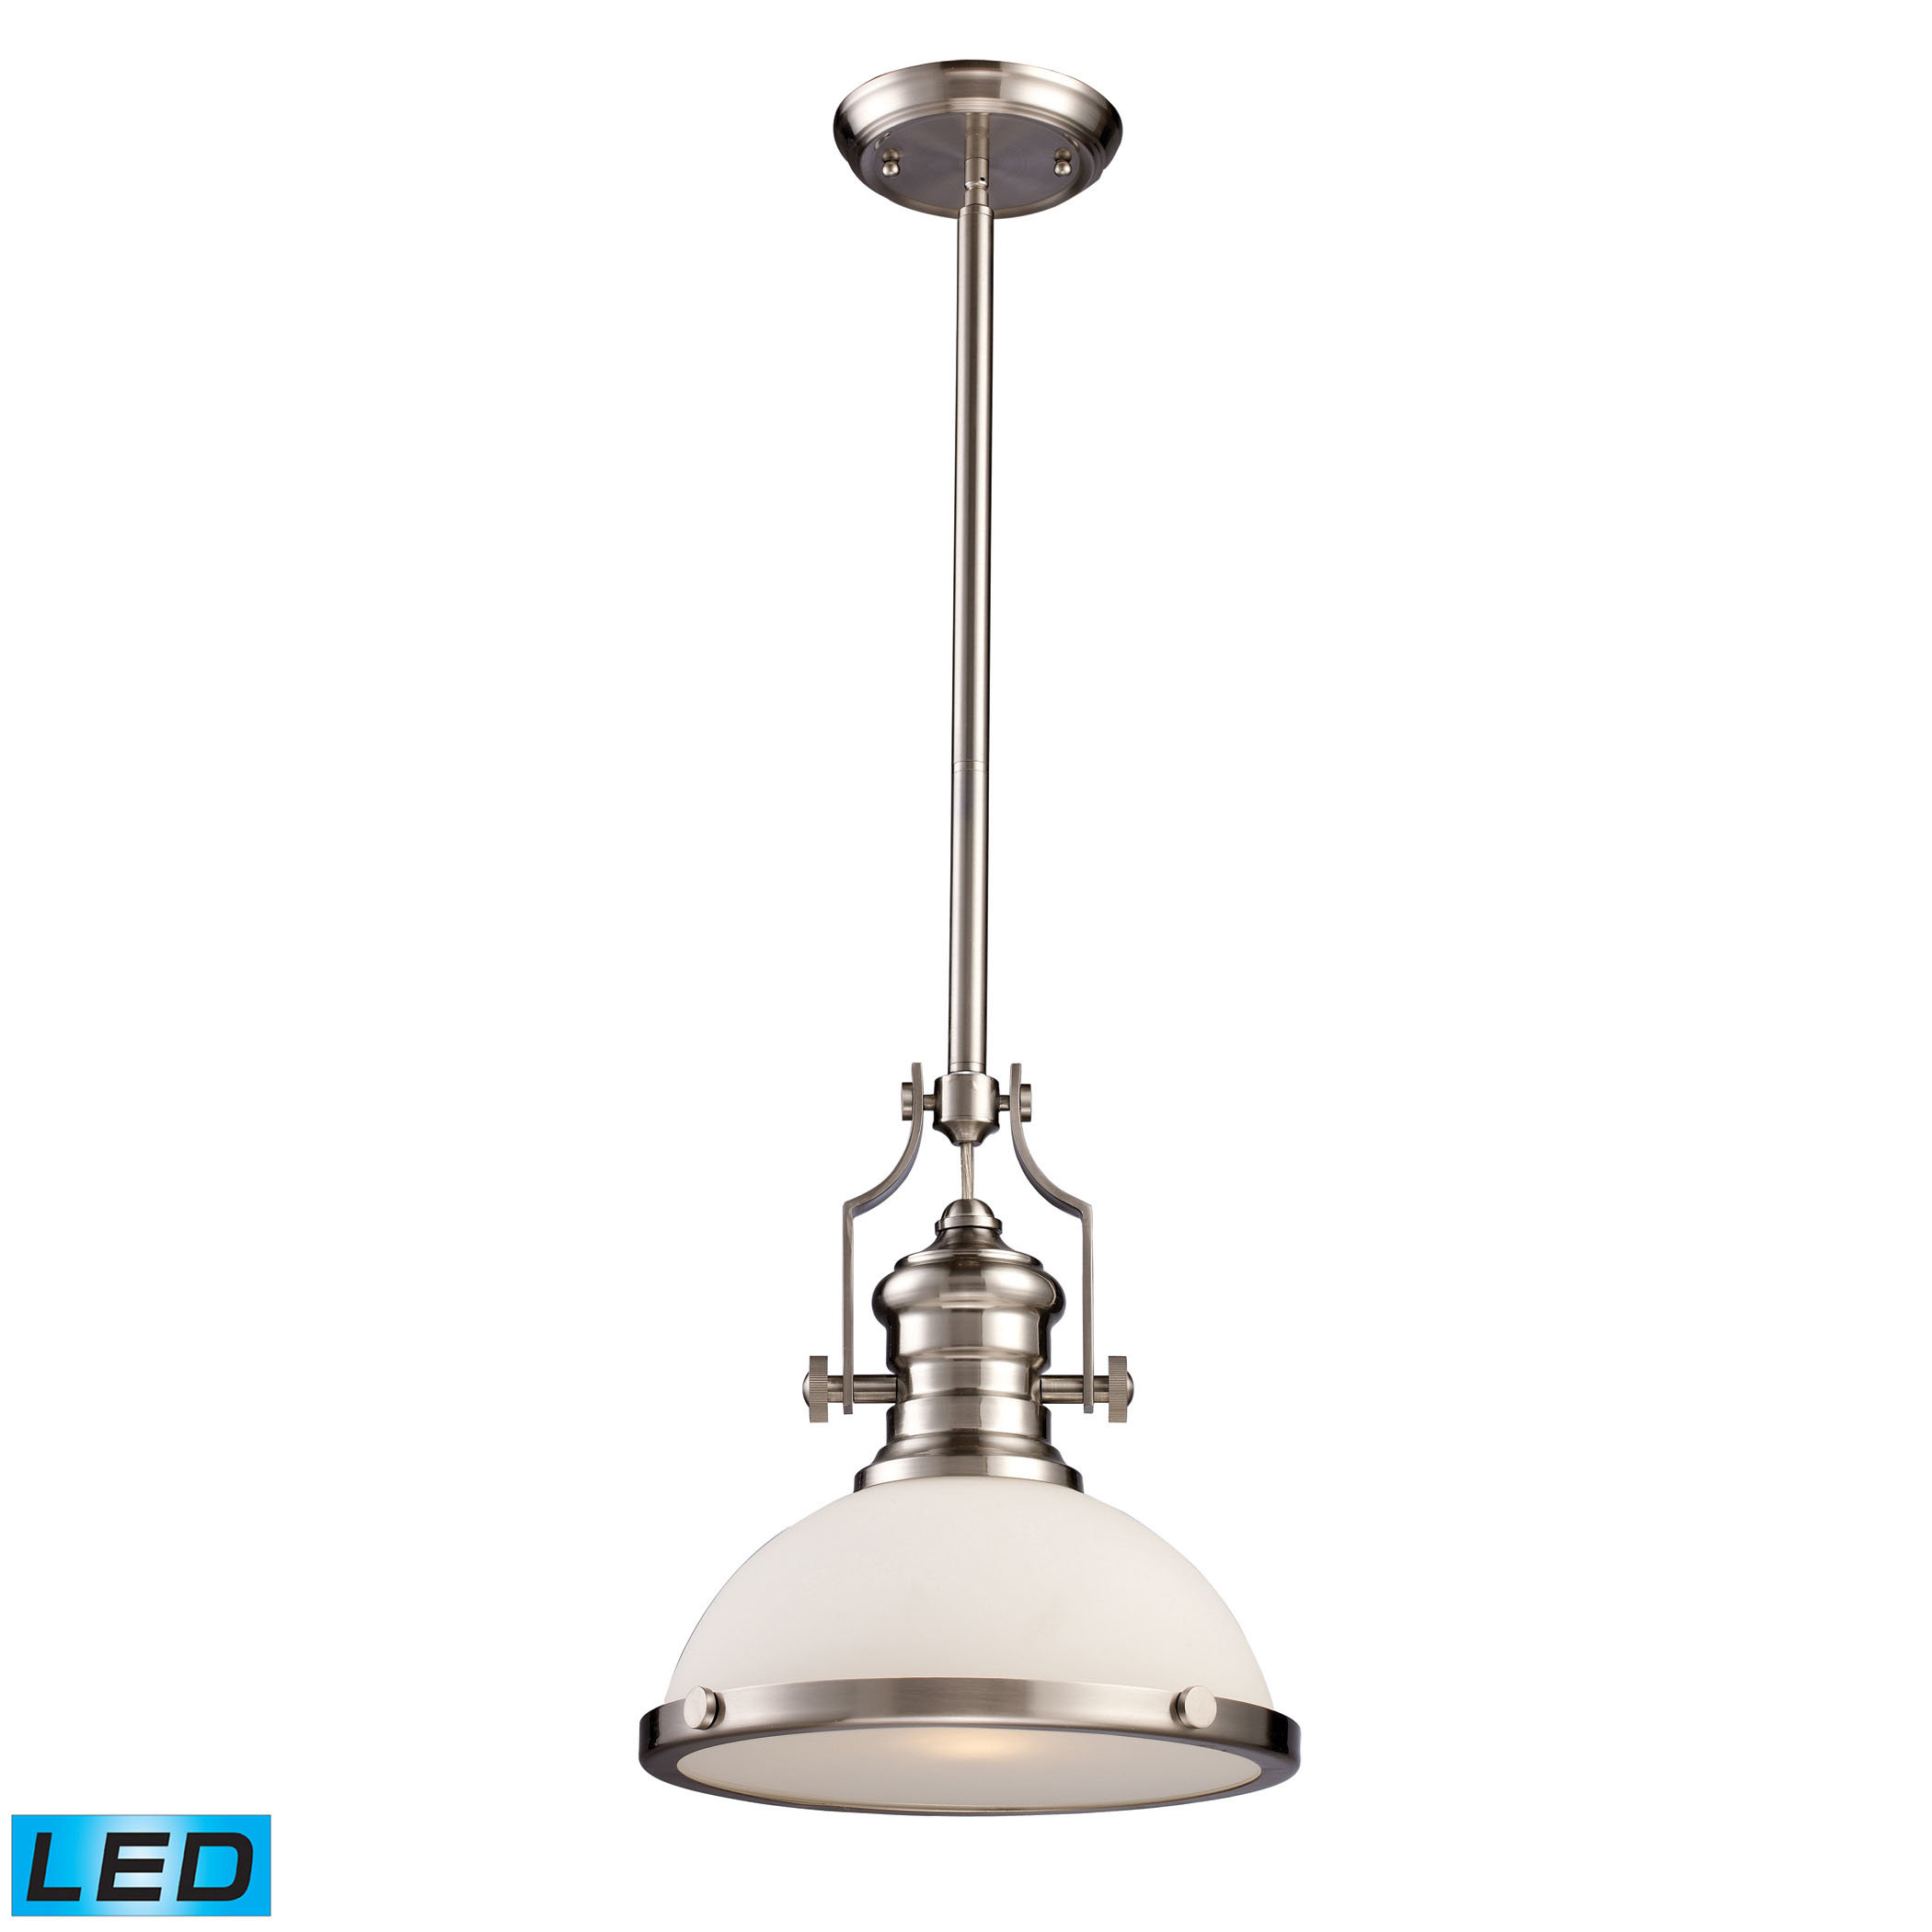 Priston 1 Light Single Dome Pendant With Priston 1 Light Single Dome Pendants (View 25 of 30)